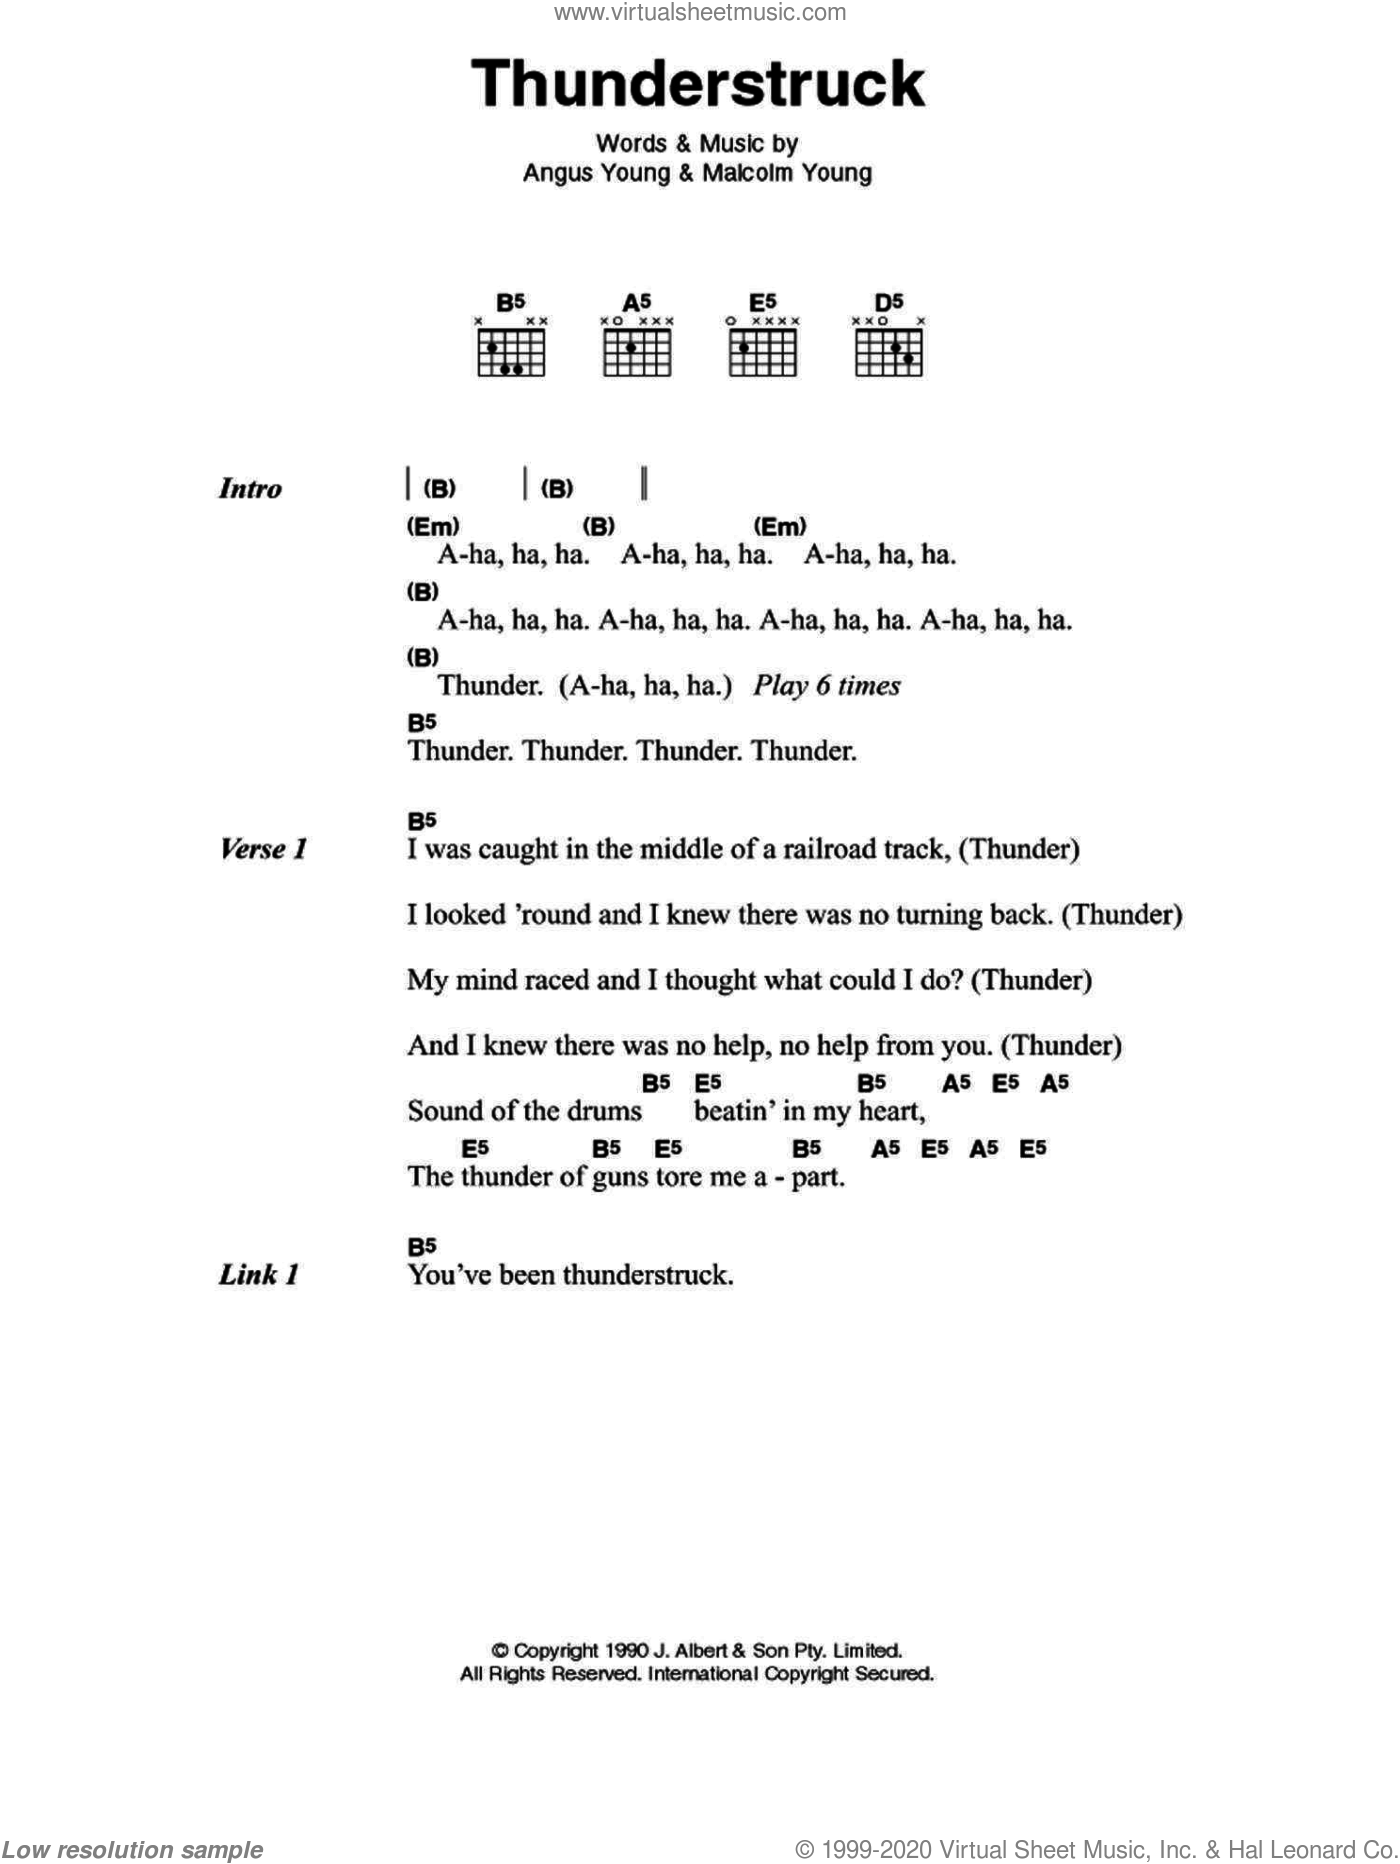 AC/DC - Thunderstruck sheet music for guitar (chords) [PDF]